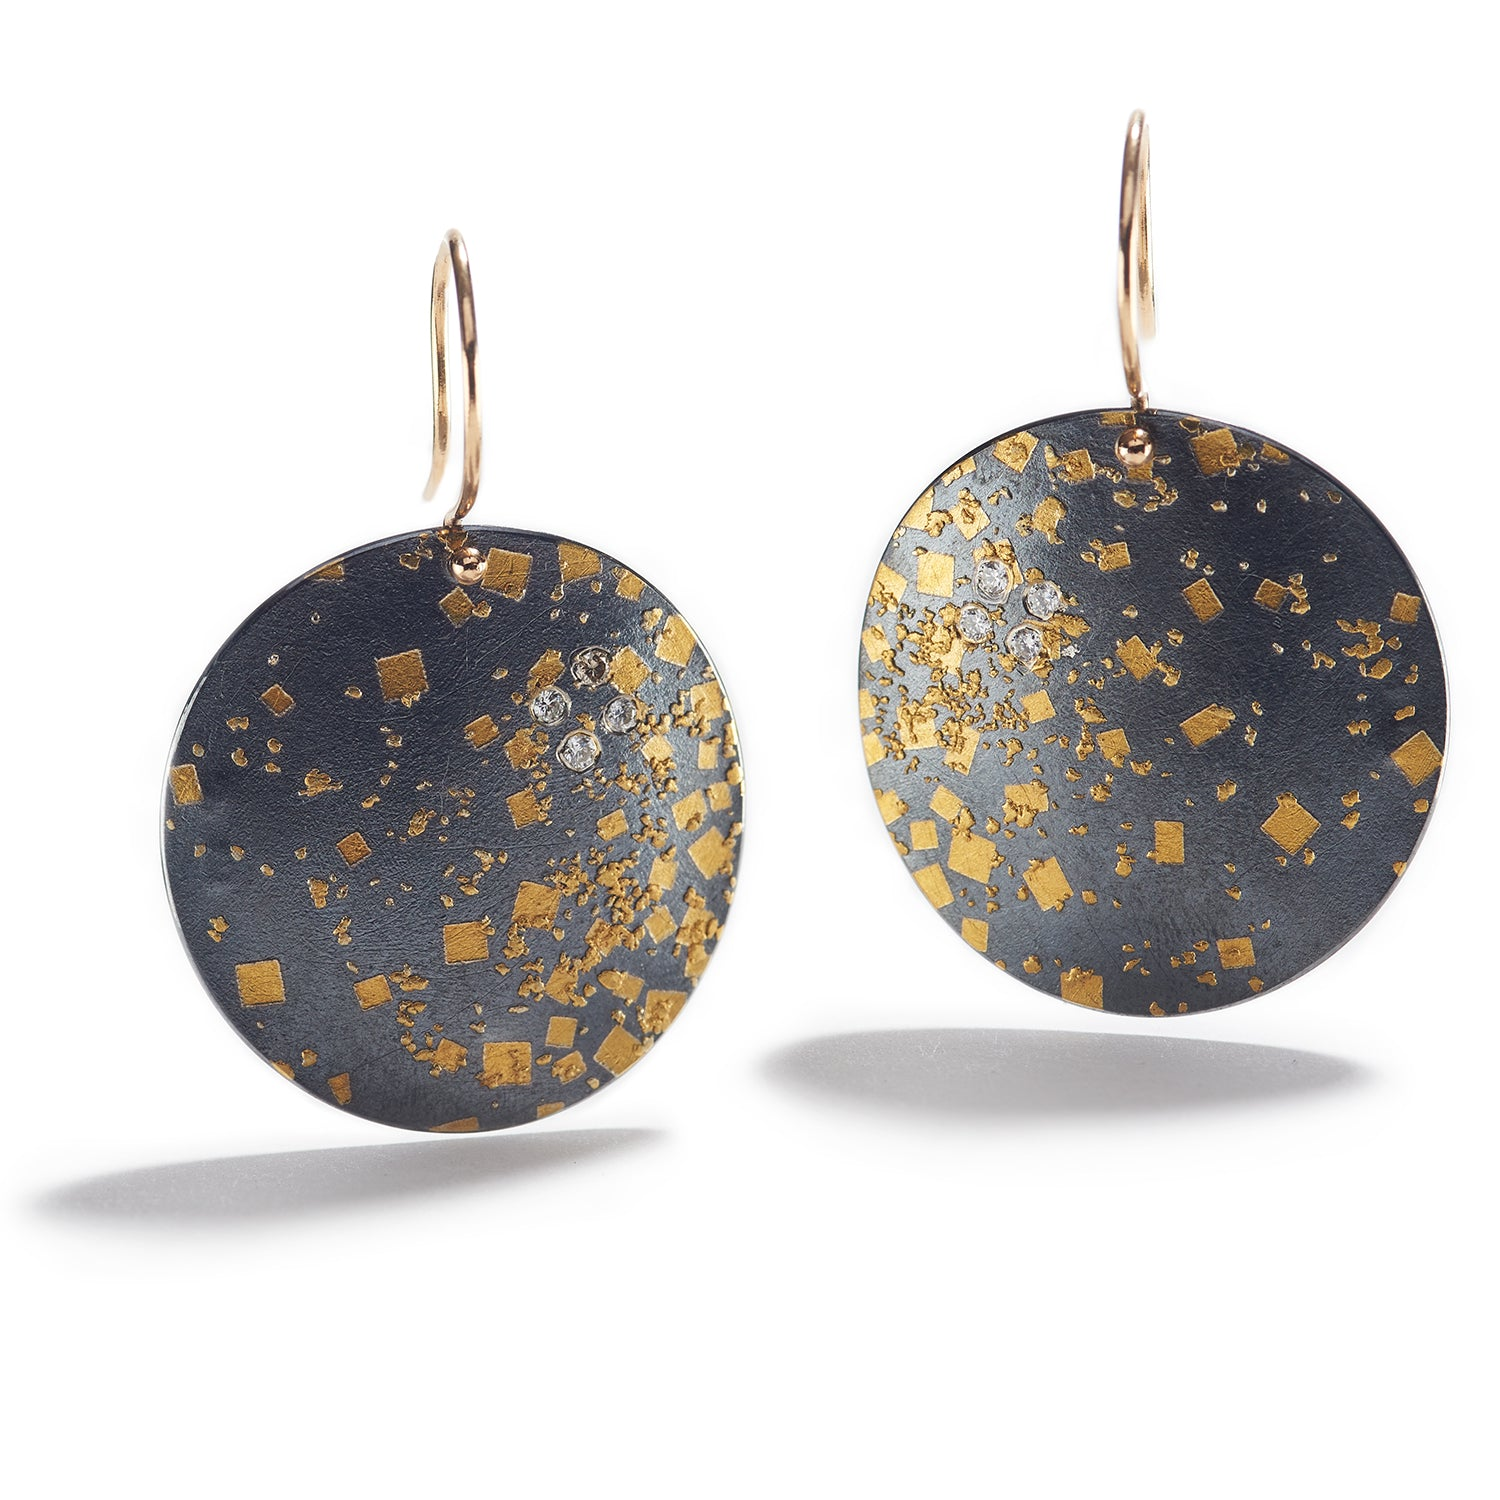 Undulating Silver & Gold Disk Earrings